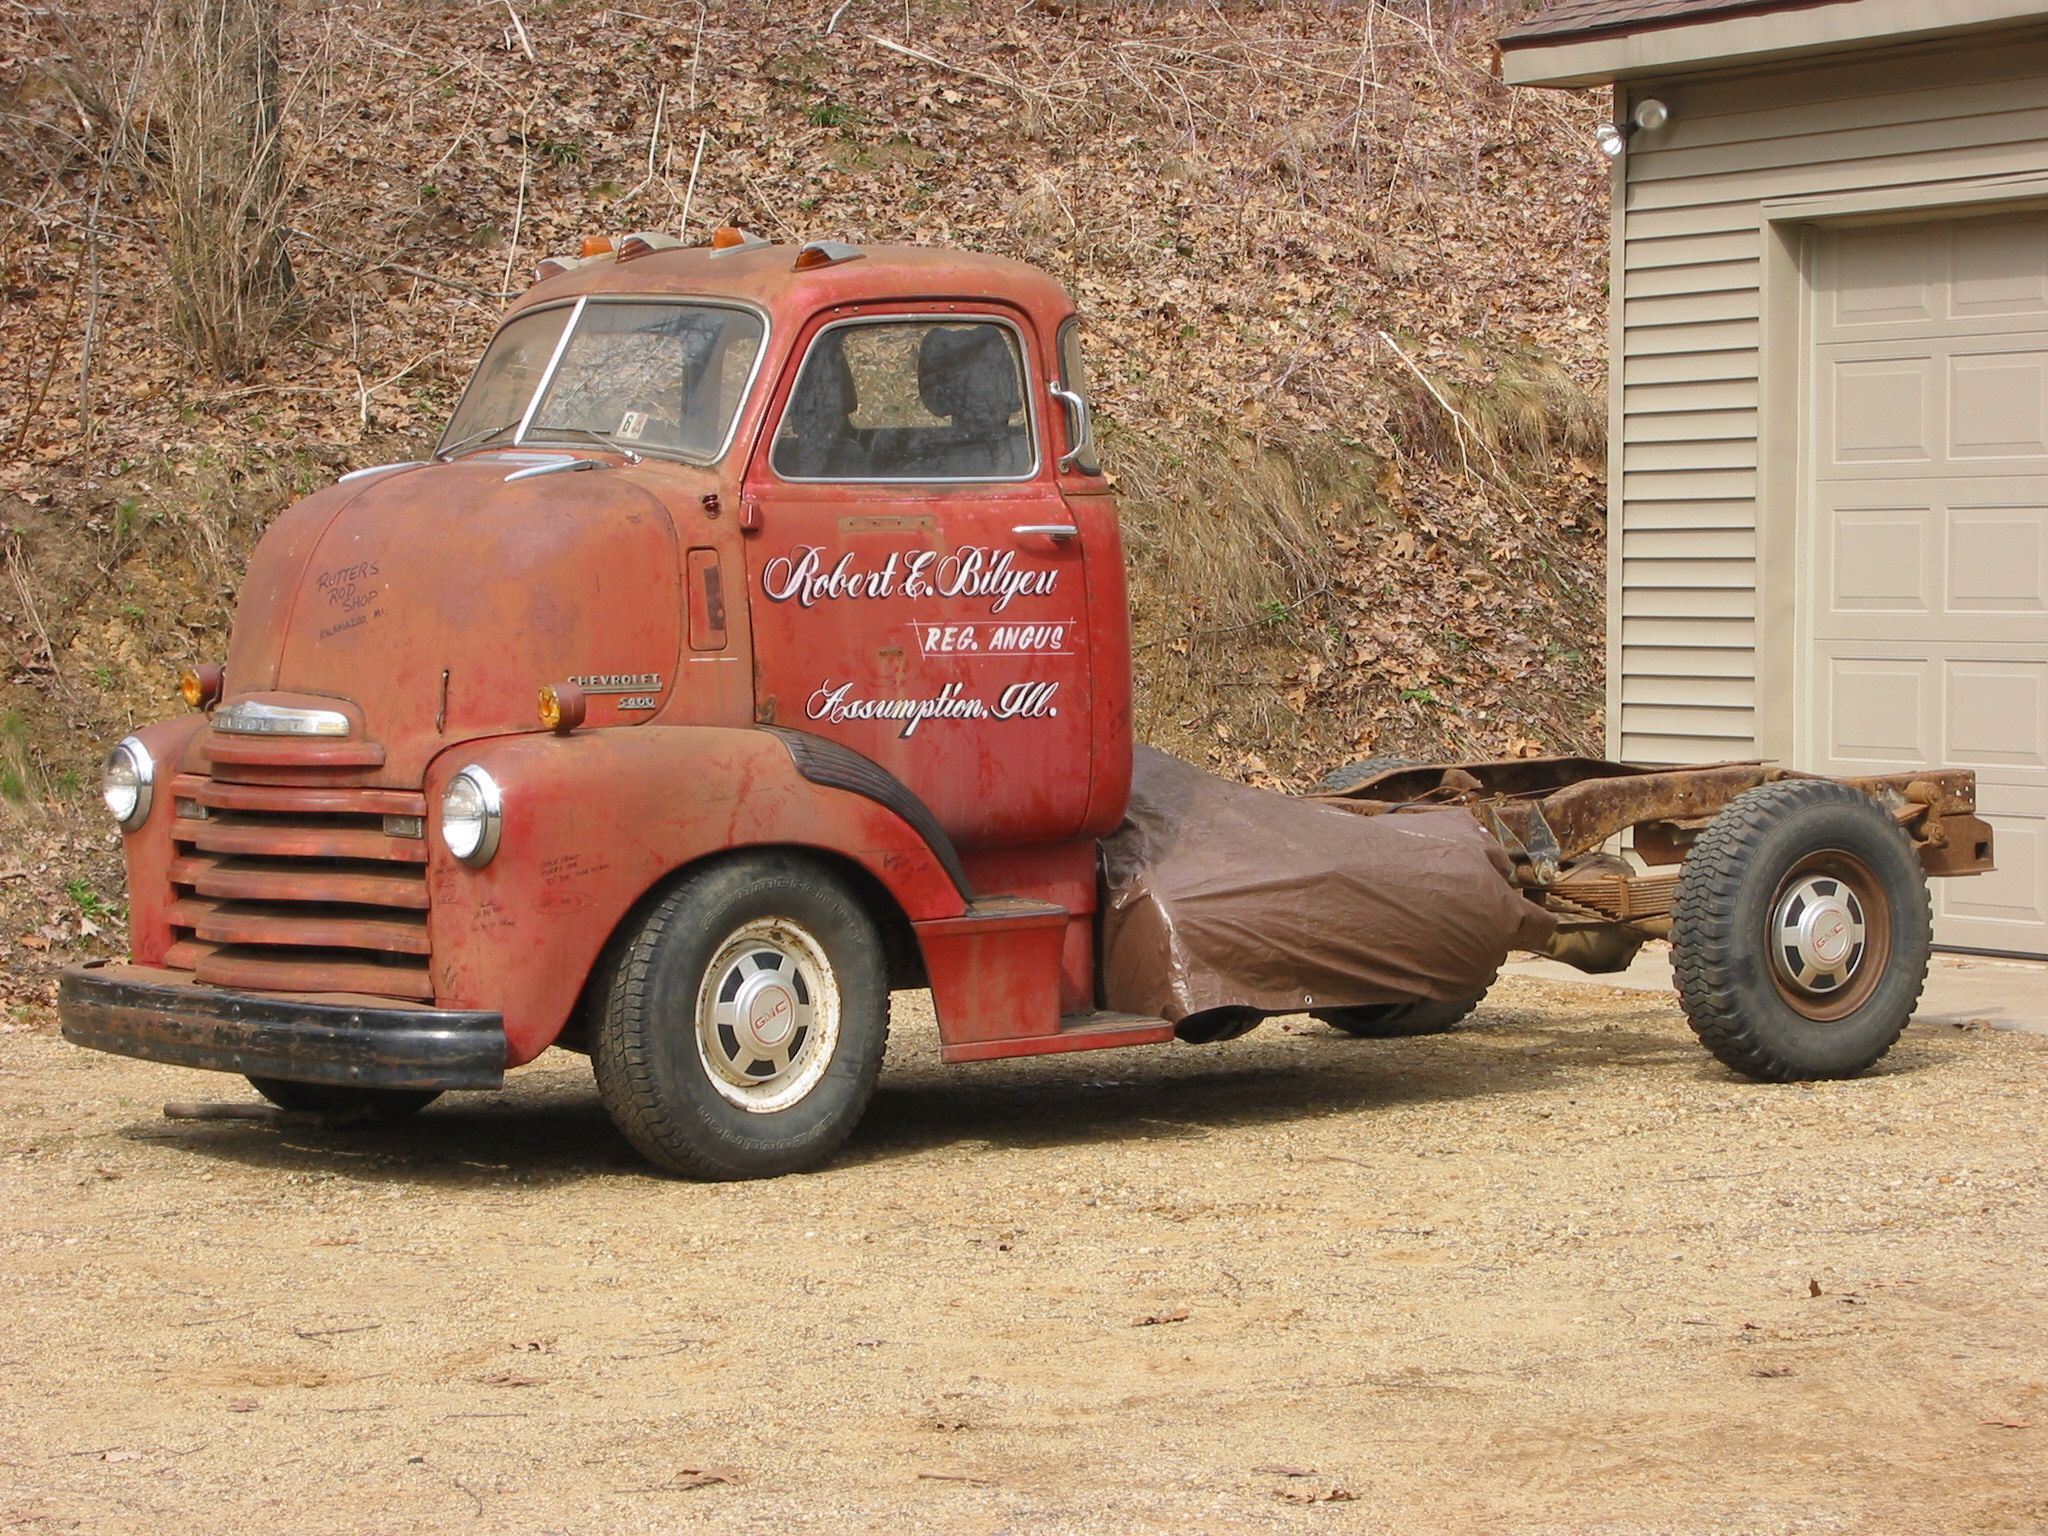 Late or early chevrolet c looks to be on a mid chevy pickup chassis